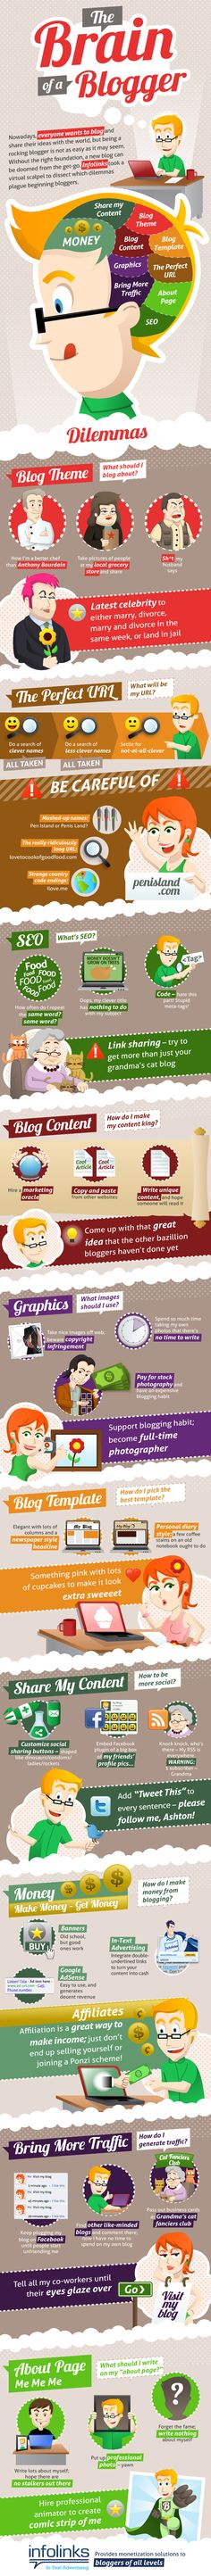 Inside The Brain Of A Blogger - Infographic